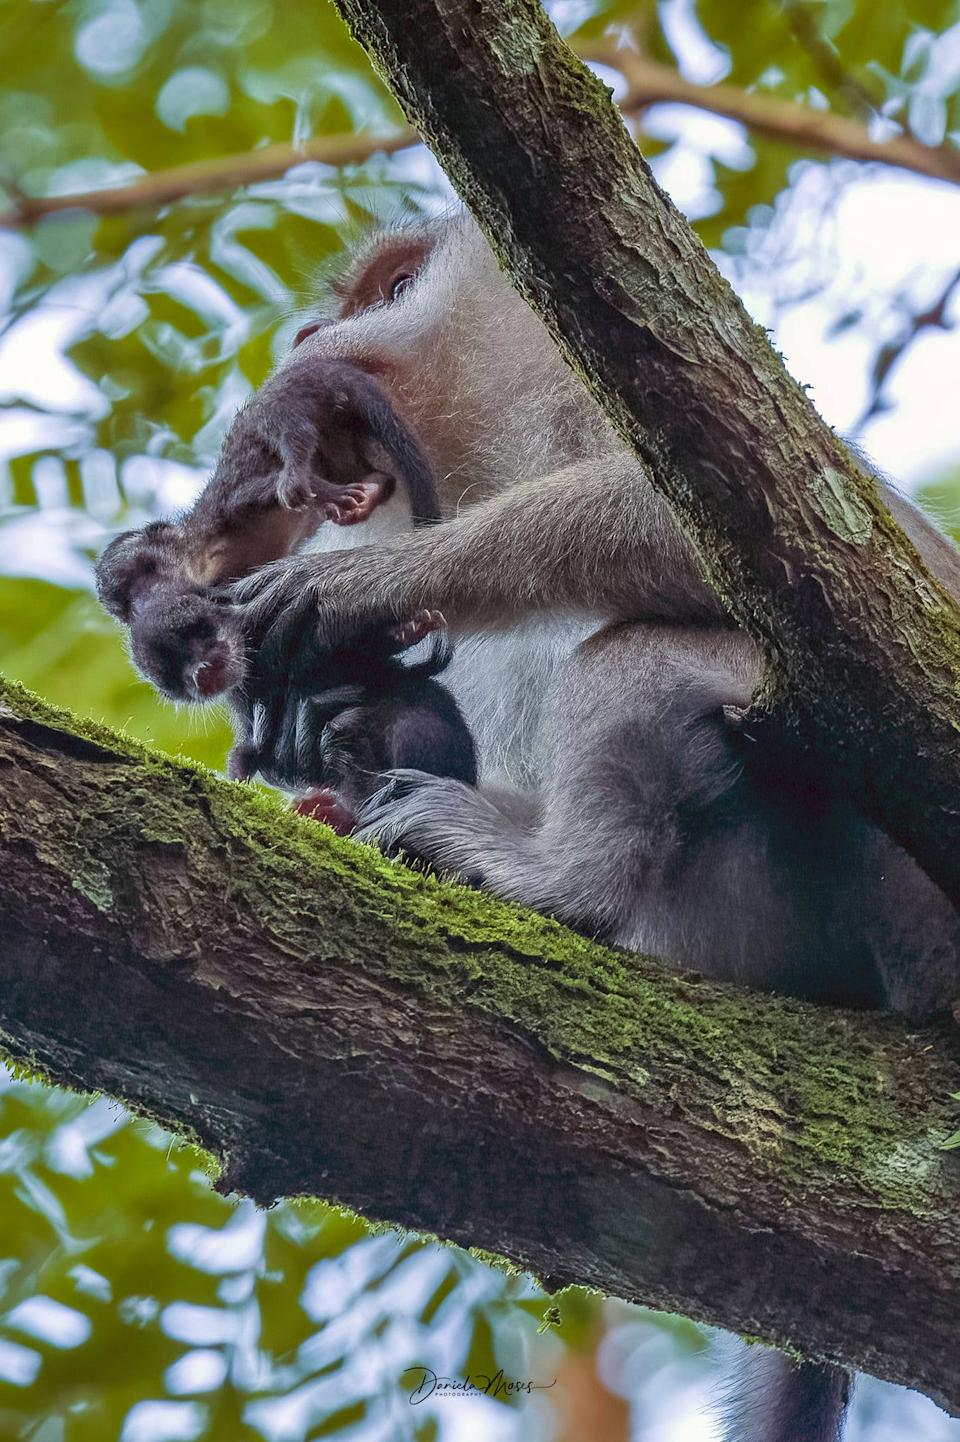 Facebook user Daniela Moses shared rare pictures of a long-tailed macaque that had captured baby common palm civets in Singapore, posted October 2021. (Photo: Daniela Moss)